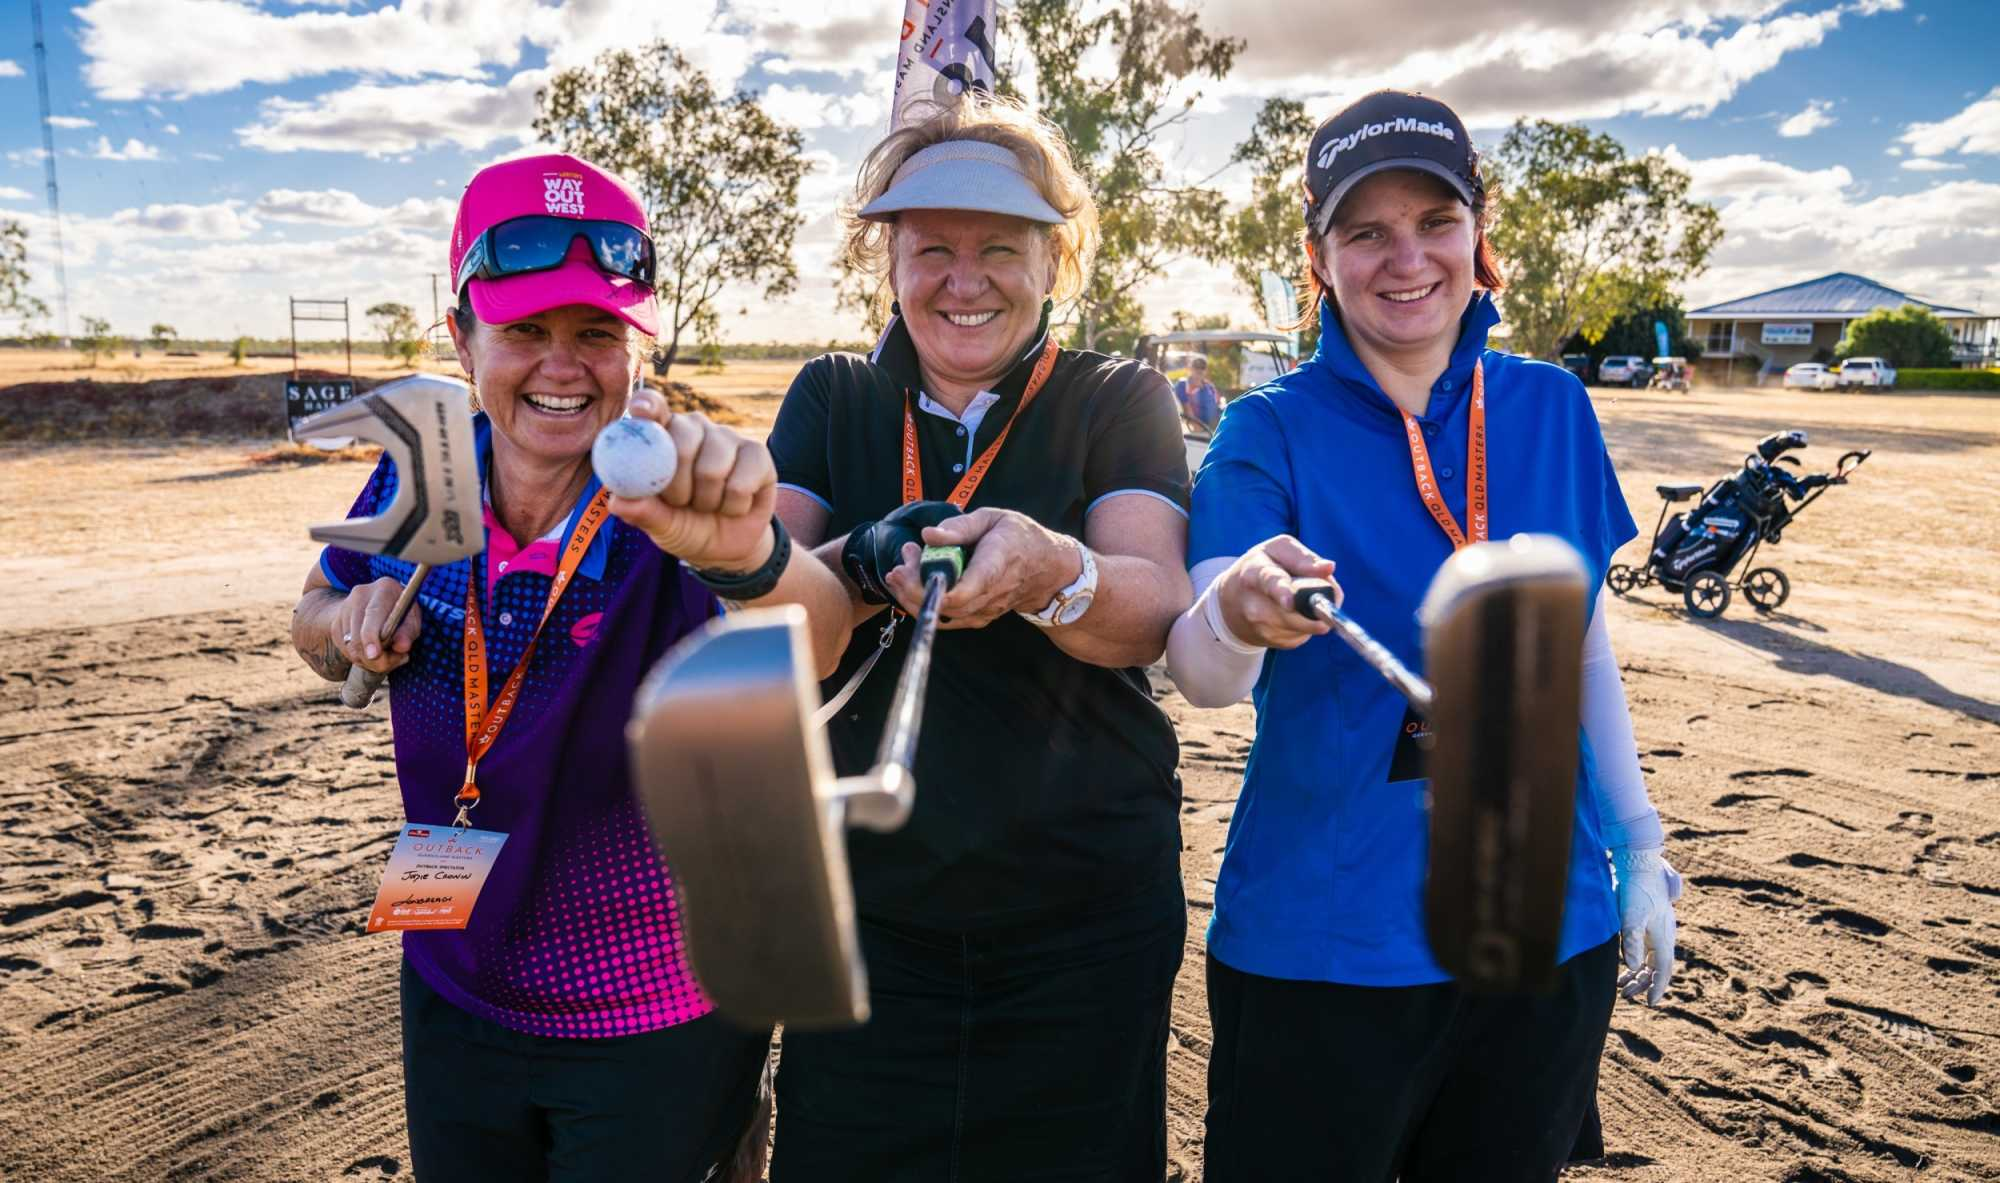 Participants enjoying the 2019 Outback Queensland Masters.